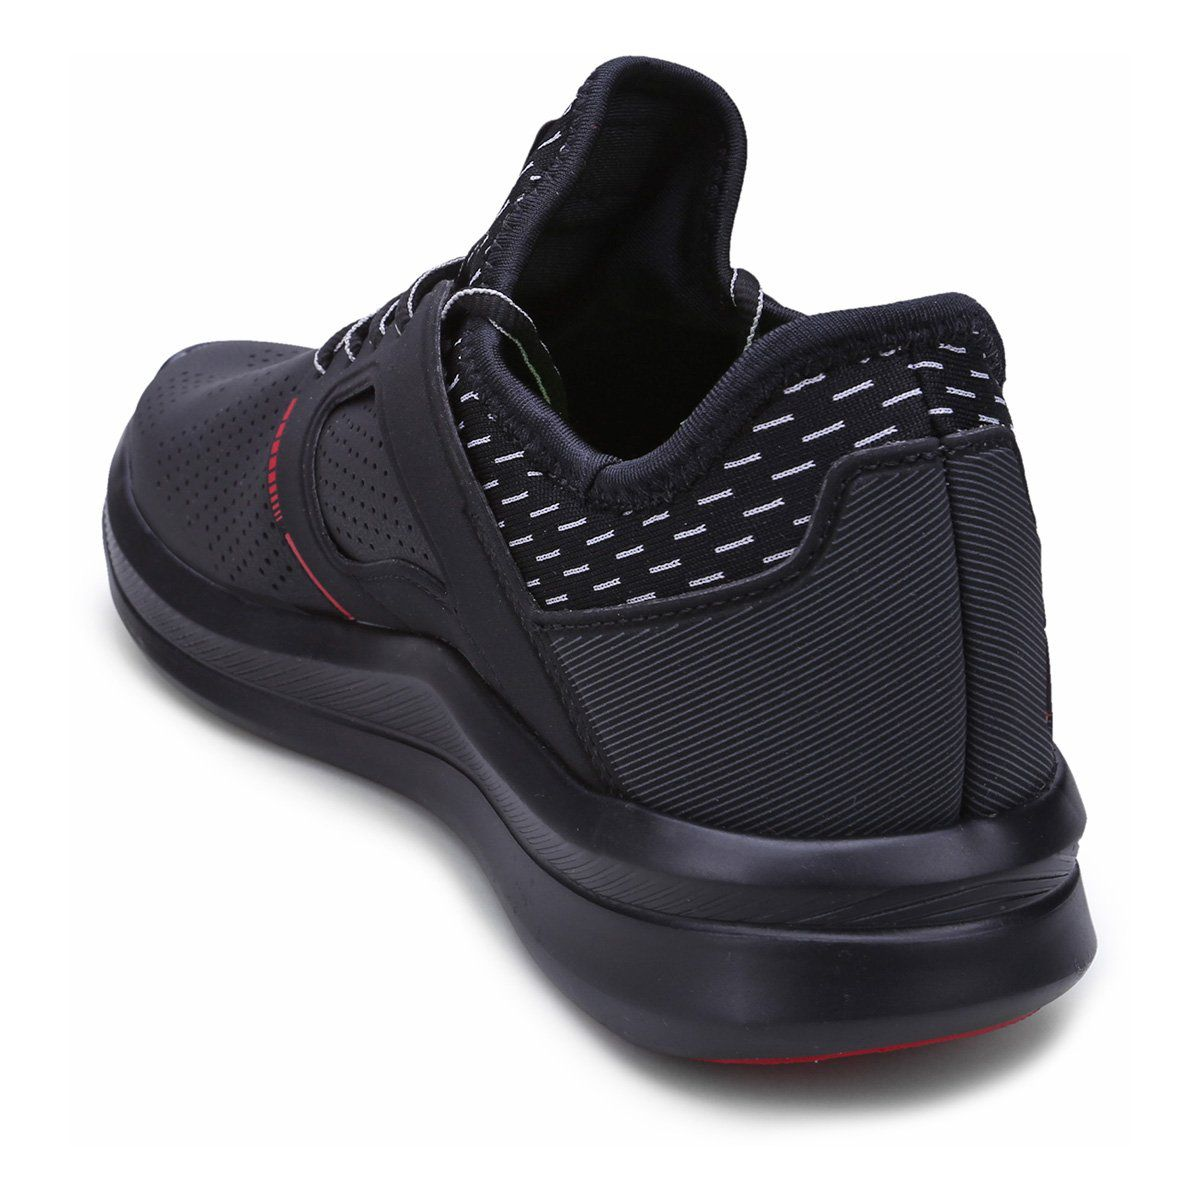 Tenis Fila Fit Tech 11J626X-964 Preto  - Dozze Shoes